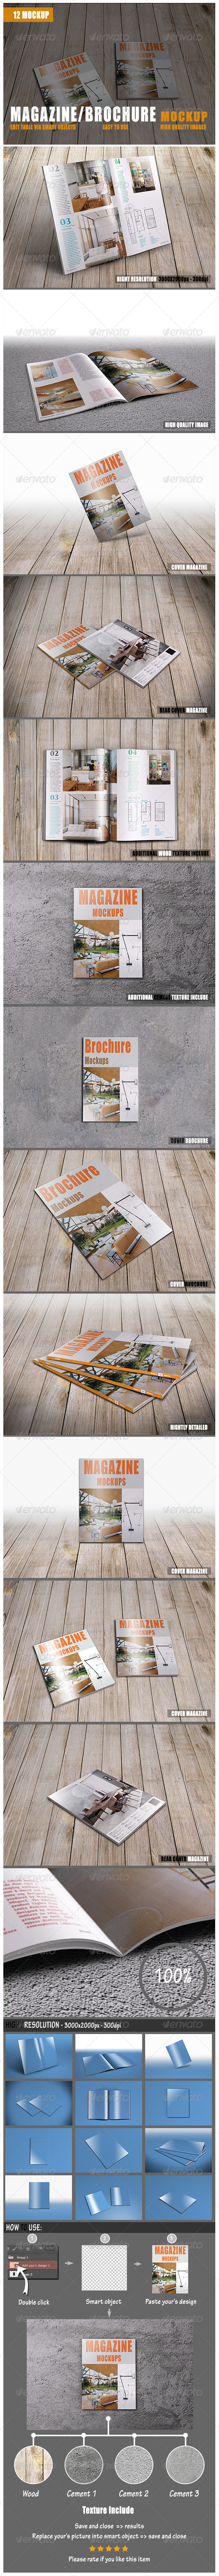 GraphicRiver Magazine Brochure Mockup 7905769